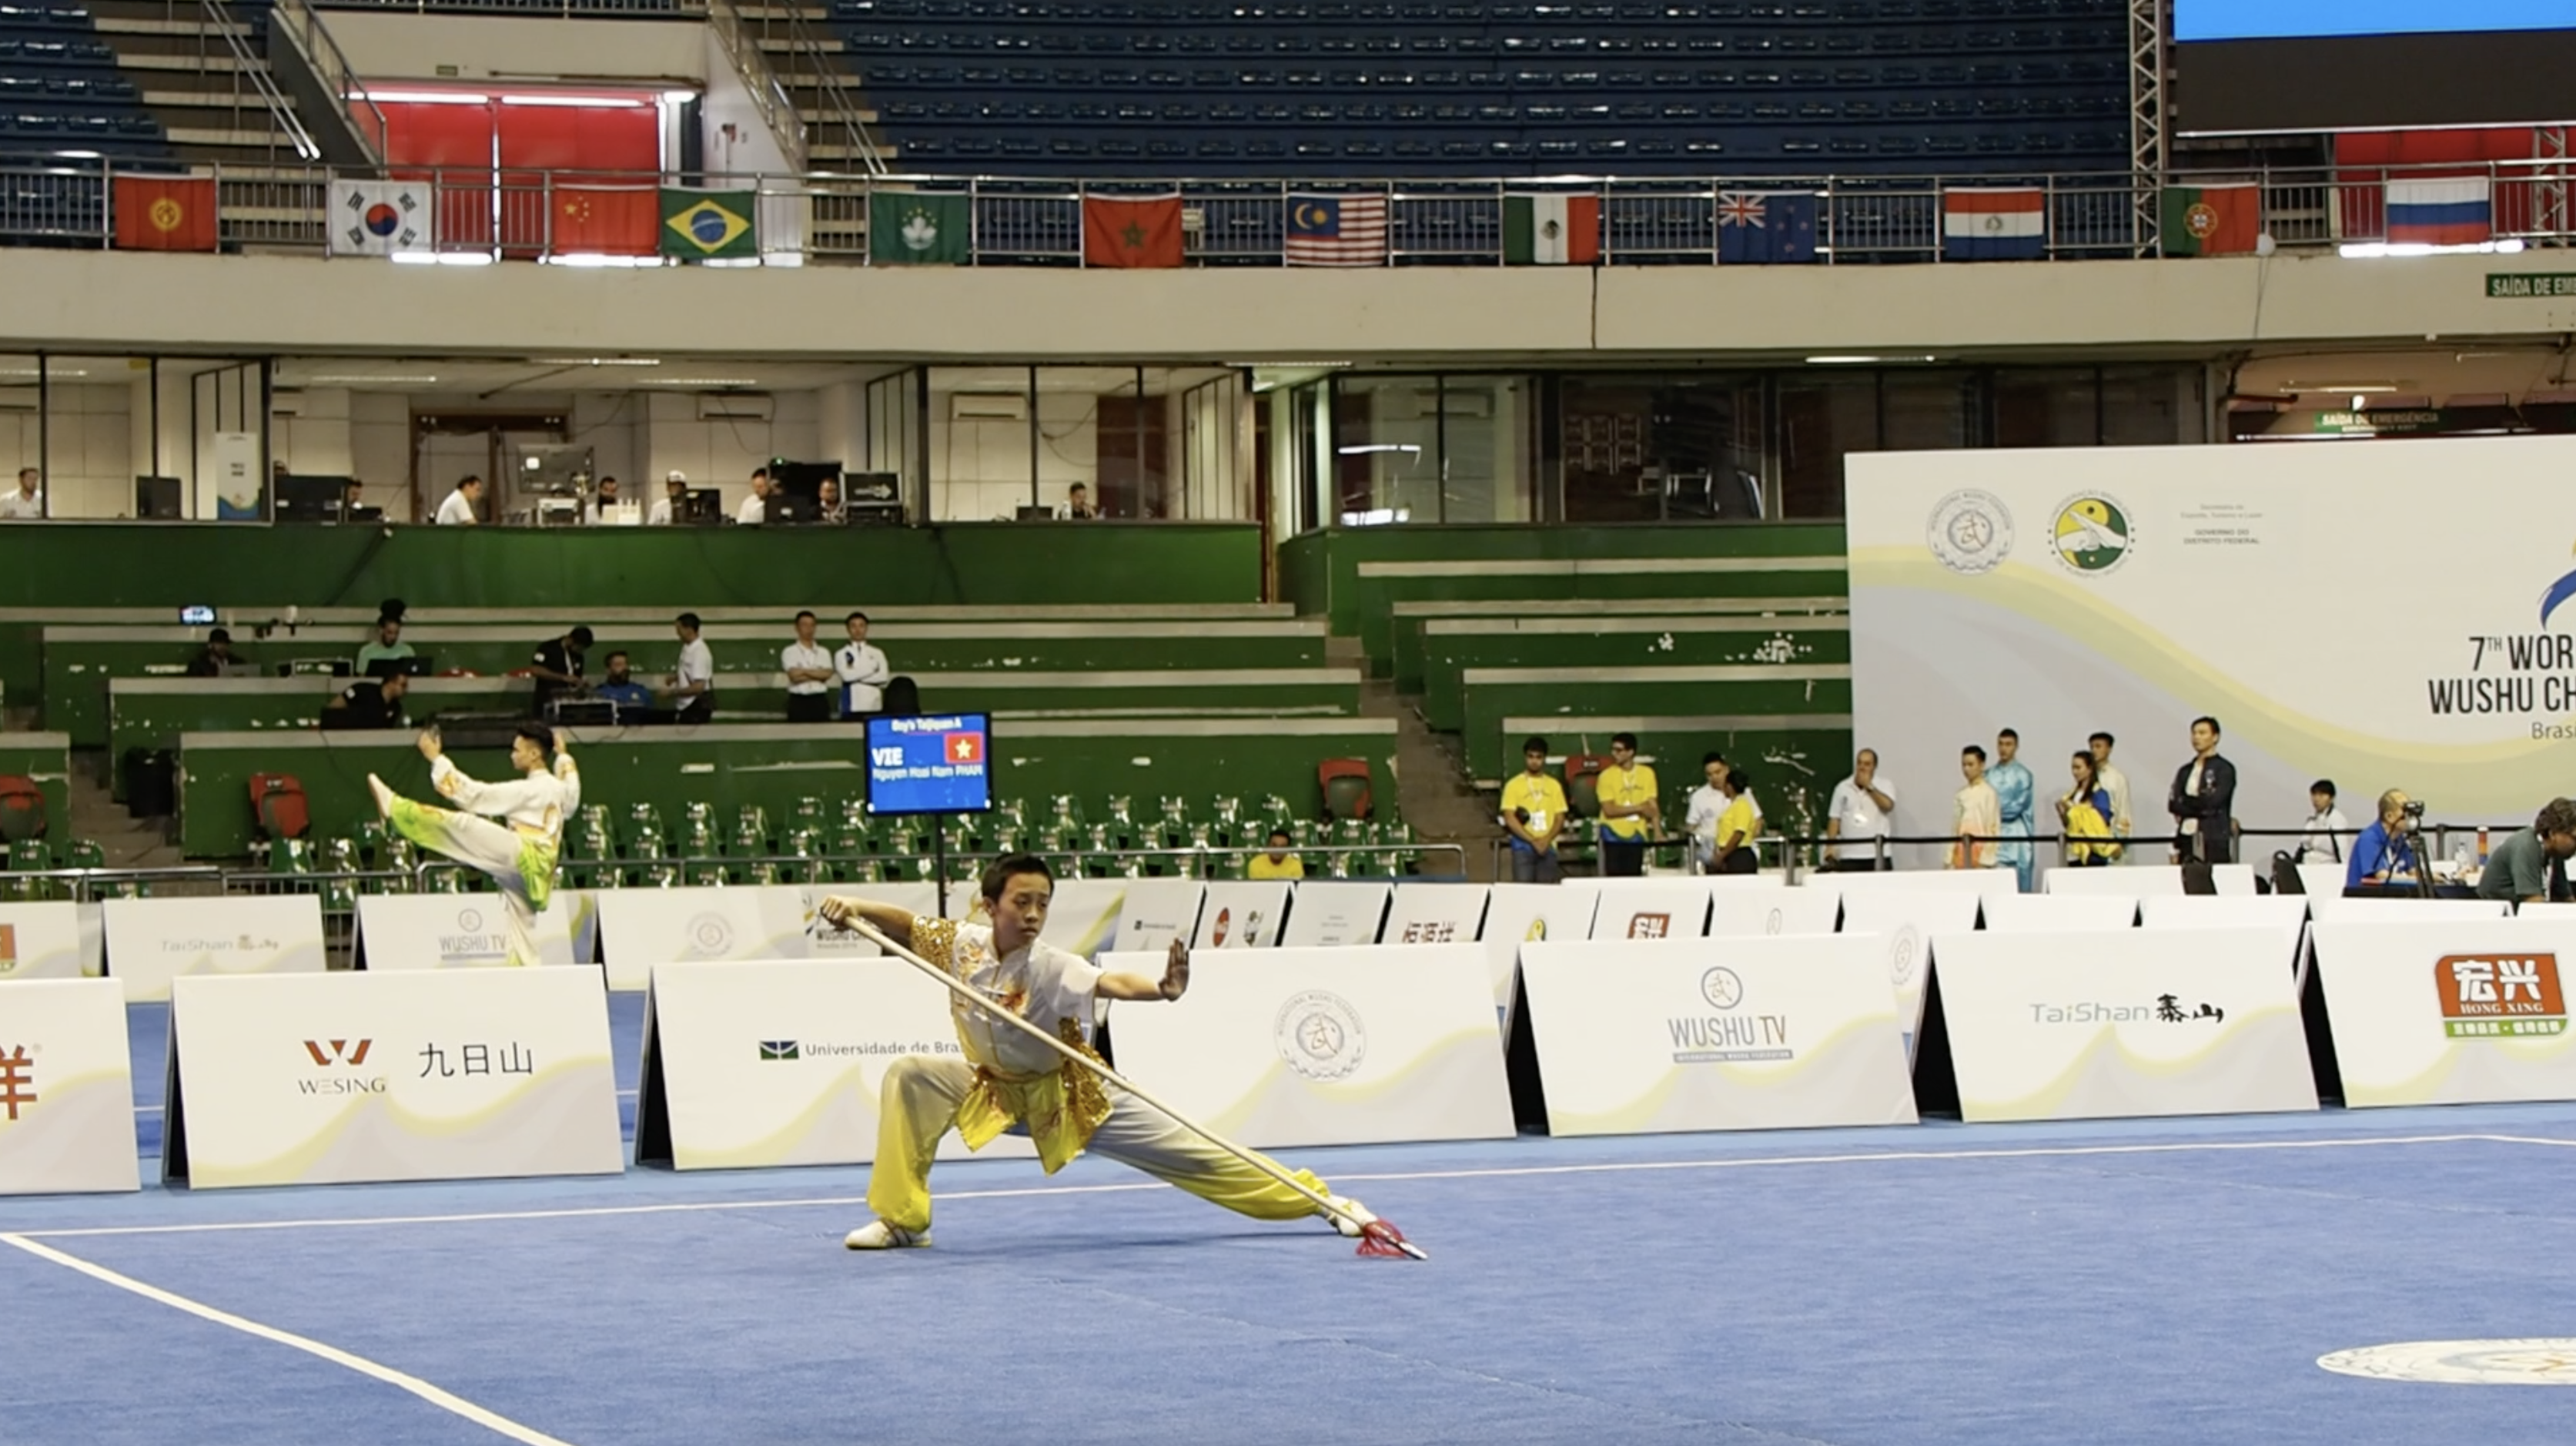 NZ Wushu | Auckland | Photos